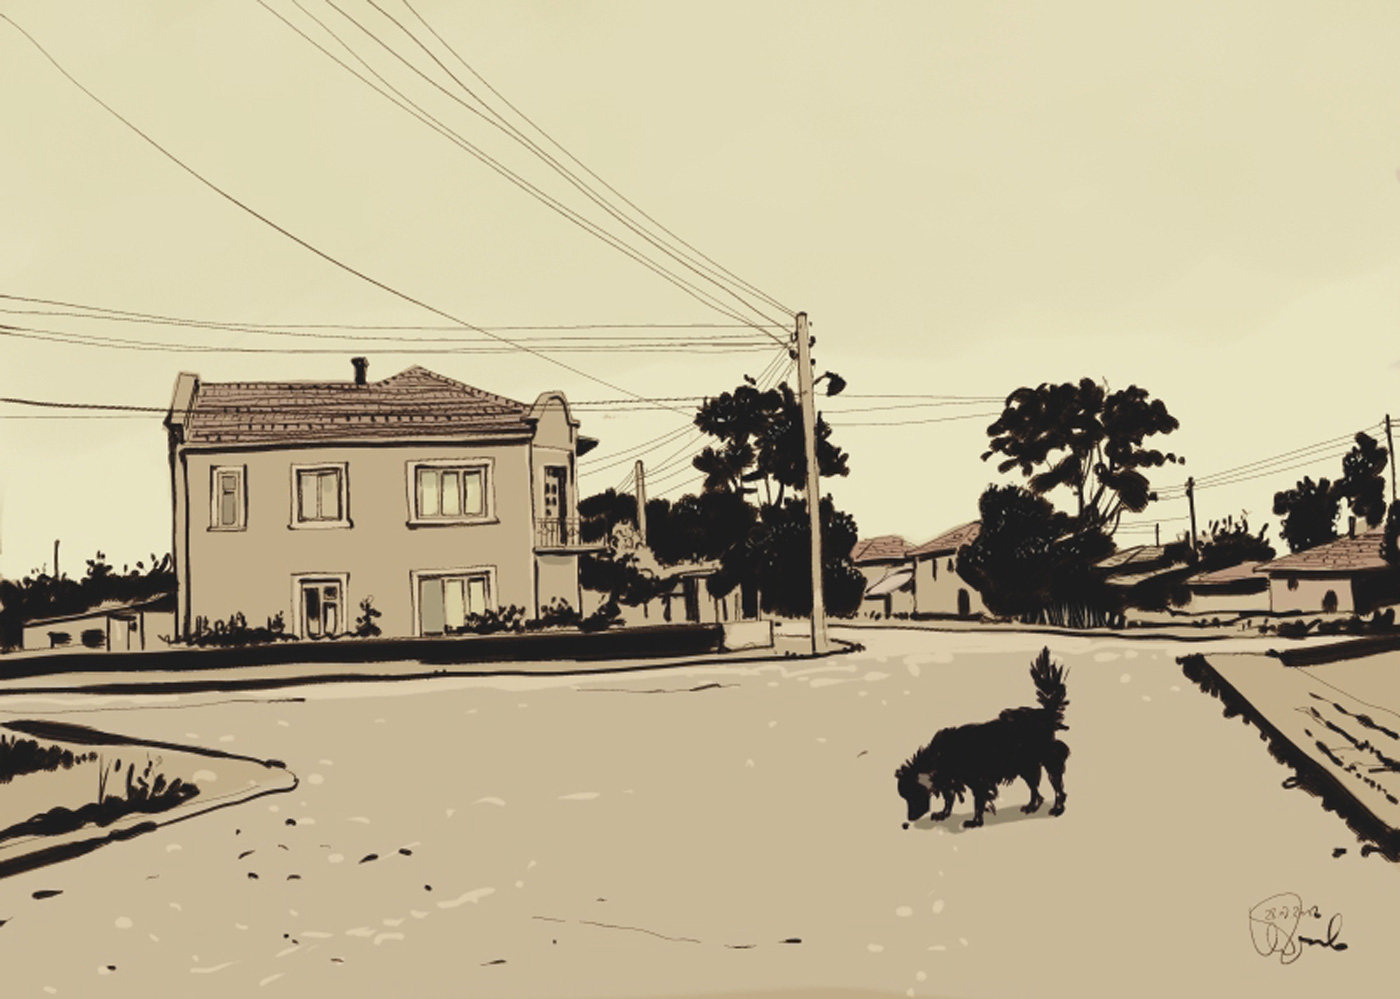 Comic Art Of a Black Dog Roaming On Village Street